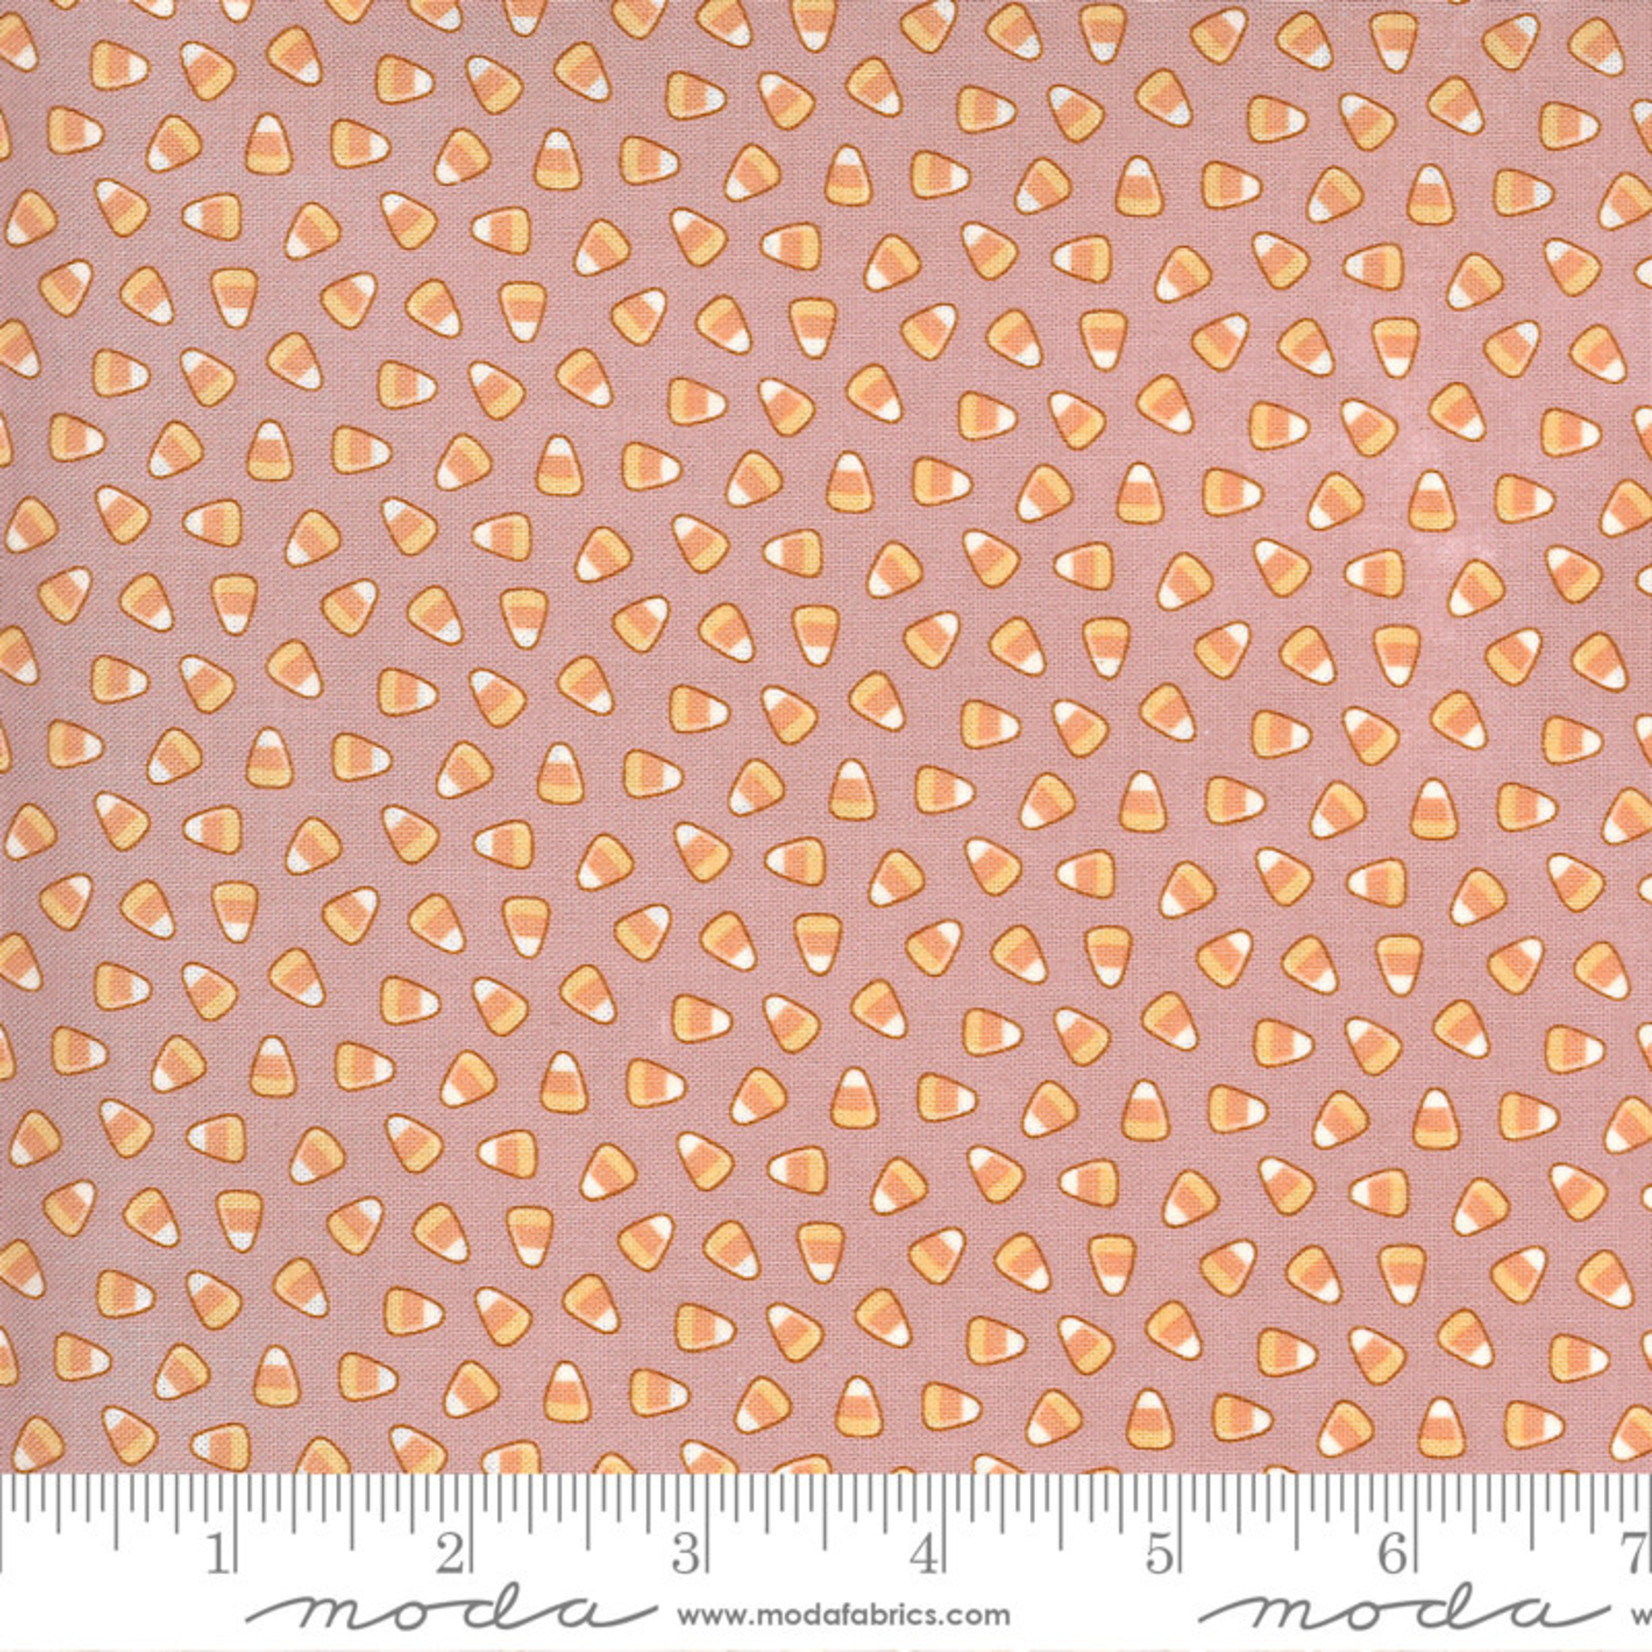 Urban Chiks Kitty Corn, Candy Corn, Spell 31175-16 $0.20 per cm or $20/m